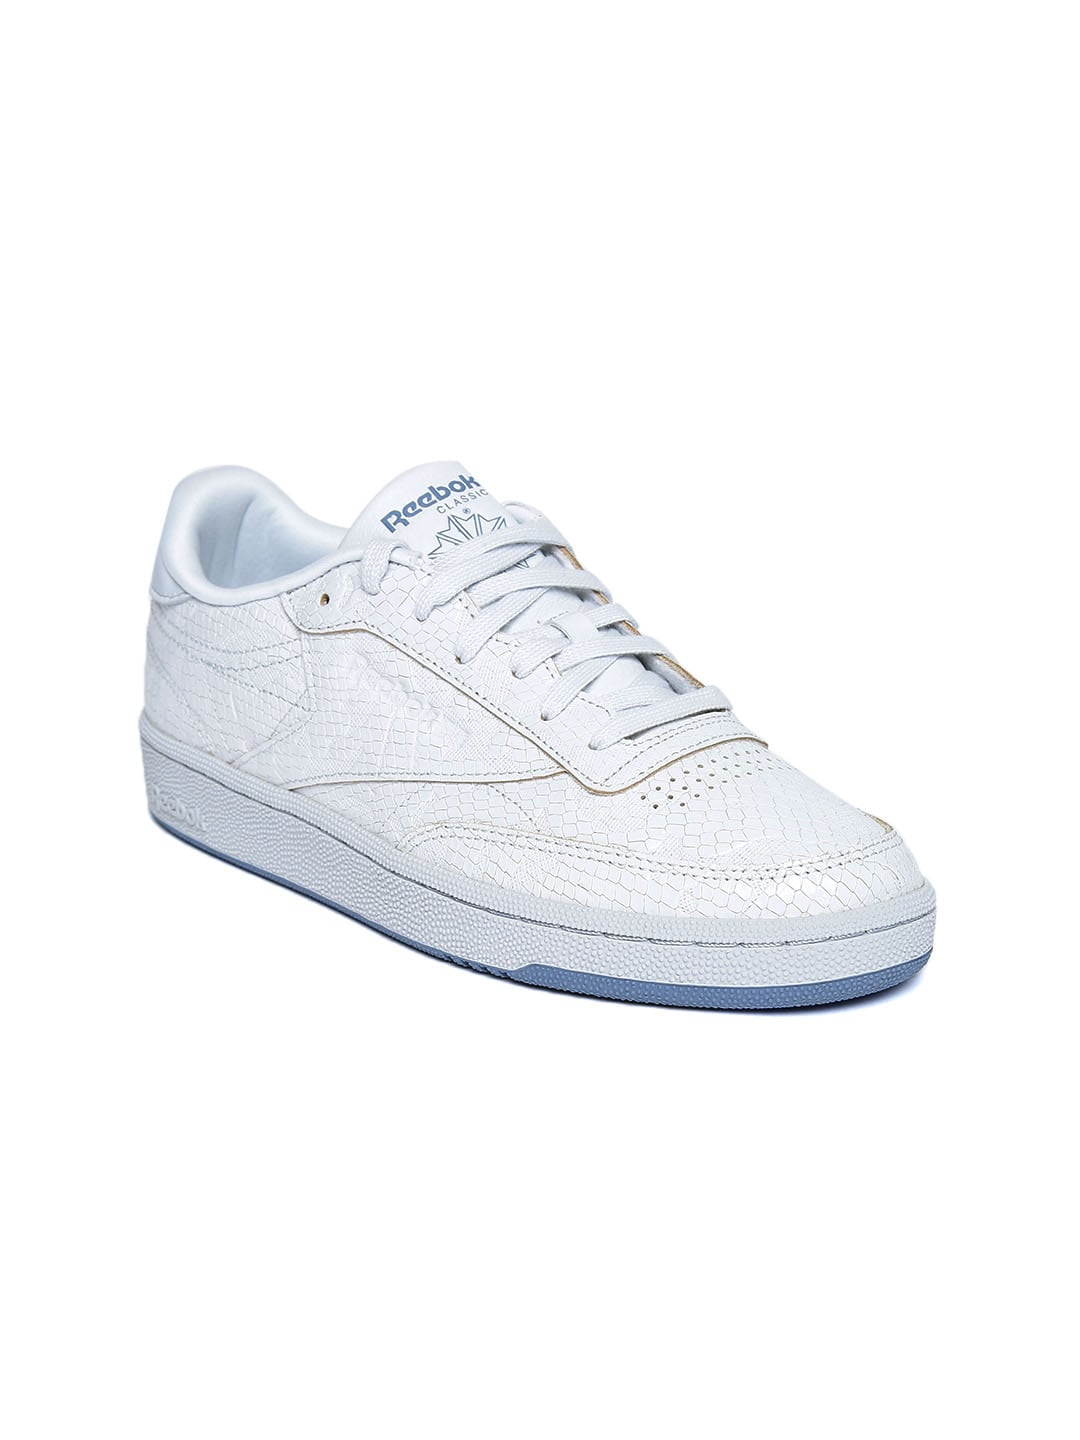 5d2ea9bd5ebd7 Reebok Leather Shoes - Buy Reebok Leather Shoes online in India